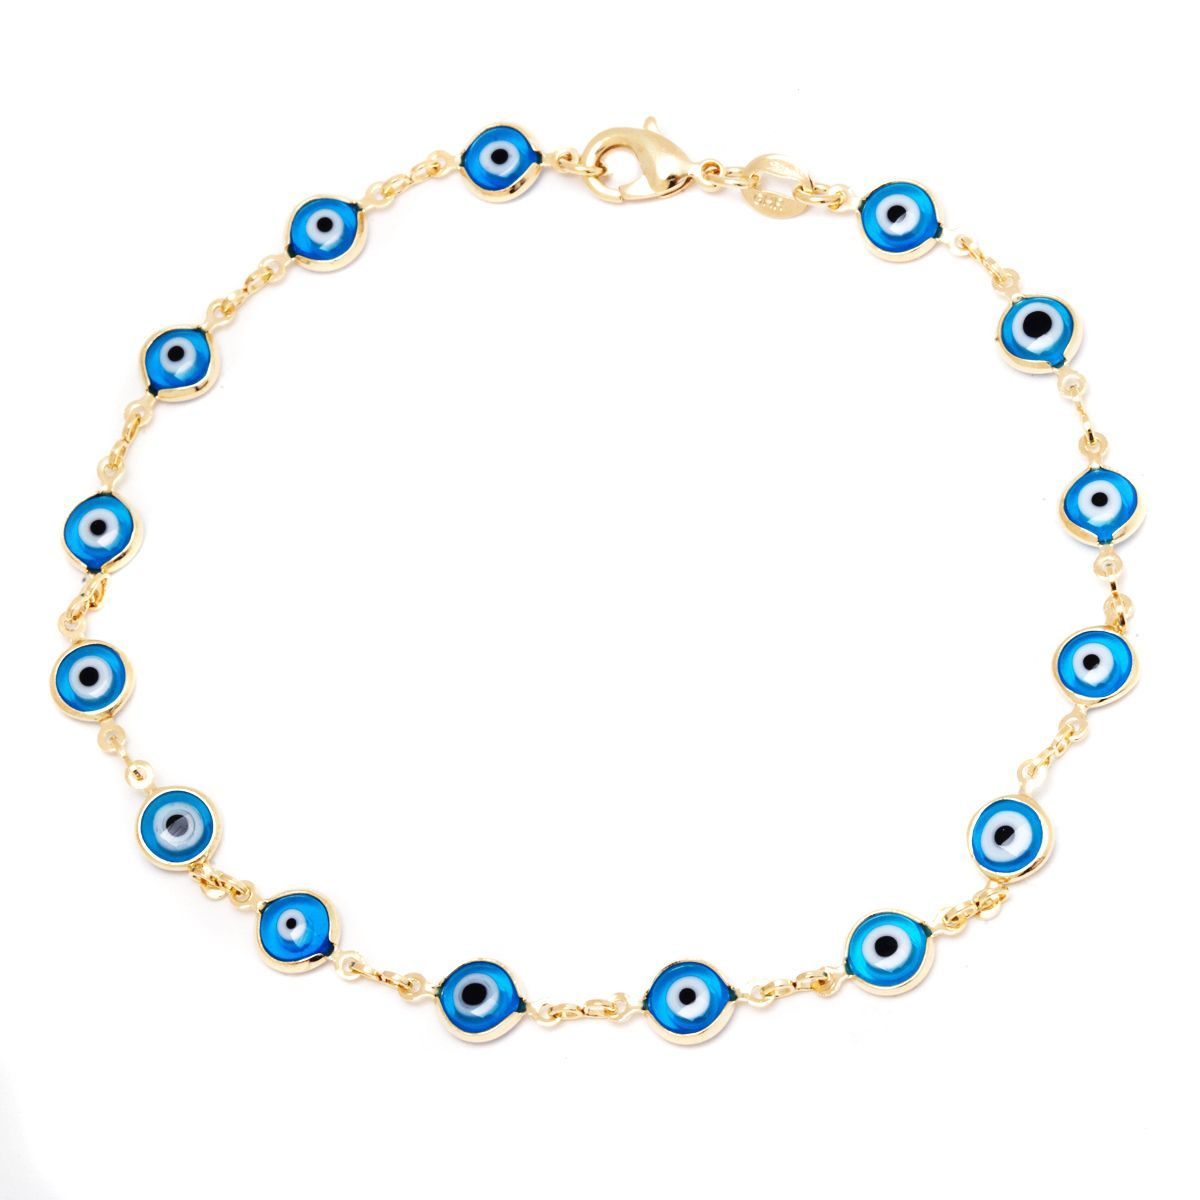 18k Goldplated Aqua Crystal Evil Eye Anklet (Aquamarine Evil Eye Anklet), Women's, Size: Over 9 Inches, Yellow